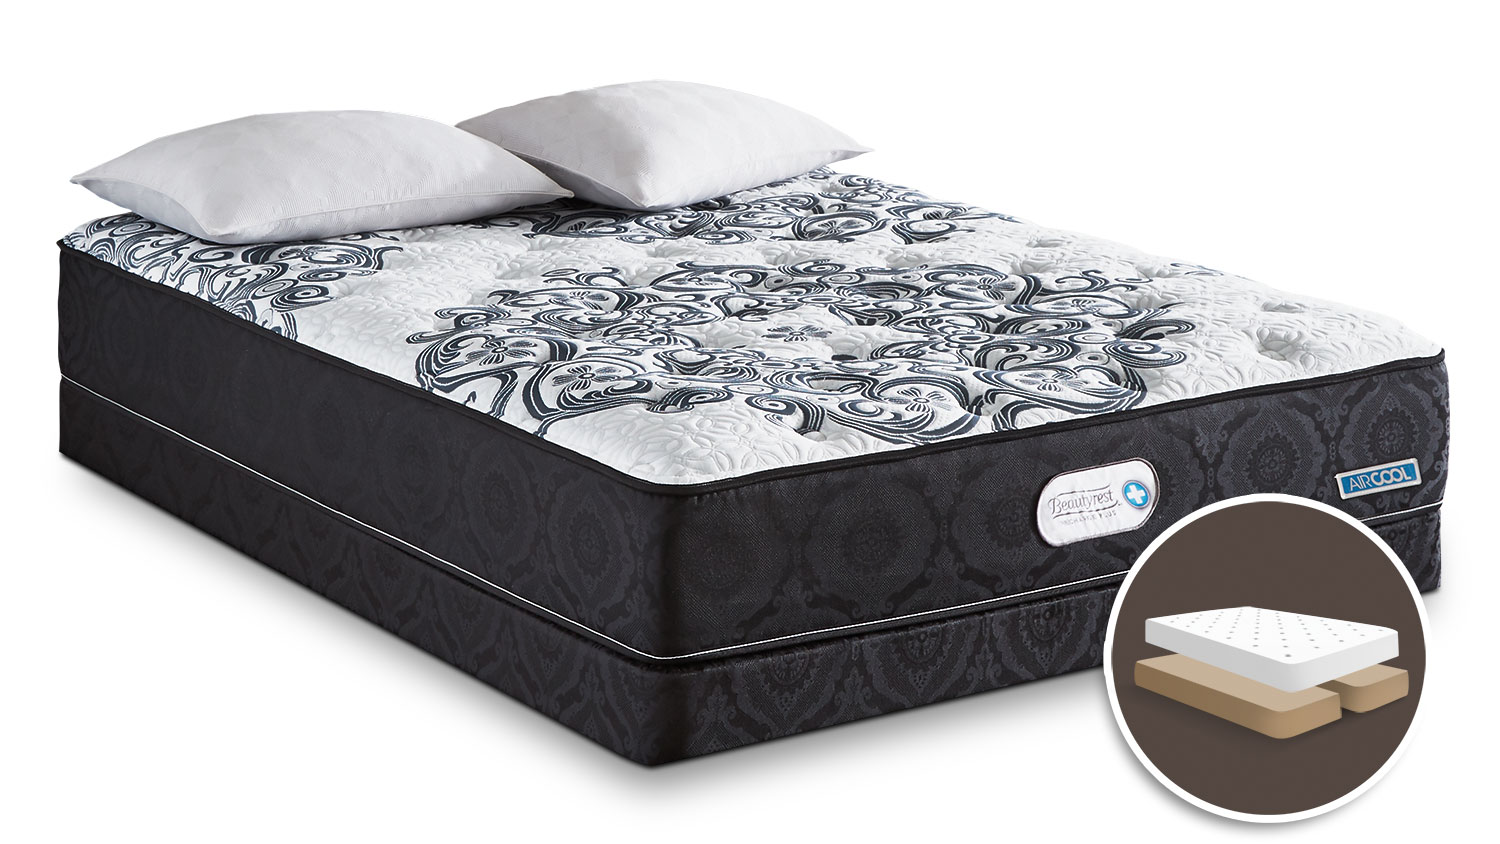 Mattresses and Bedding - Simmons Beautyrest® Recharge Plus Envy Tight-Top Firm Queen Set with Split Boxspring